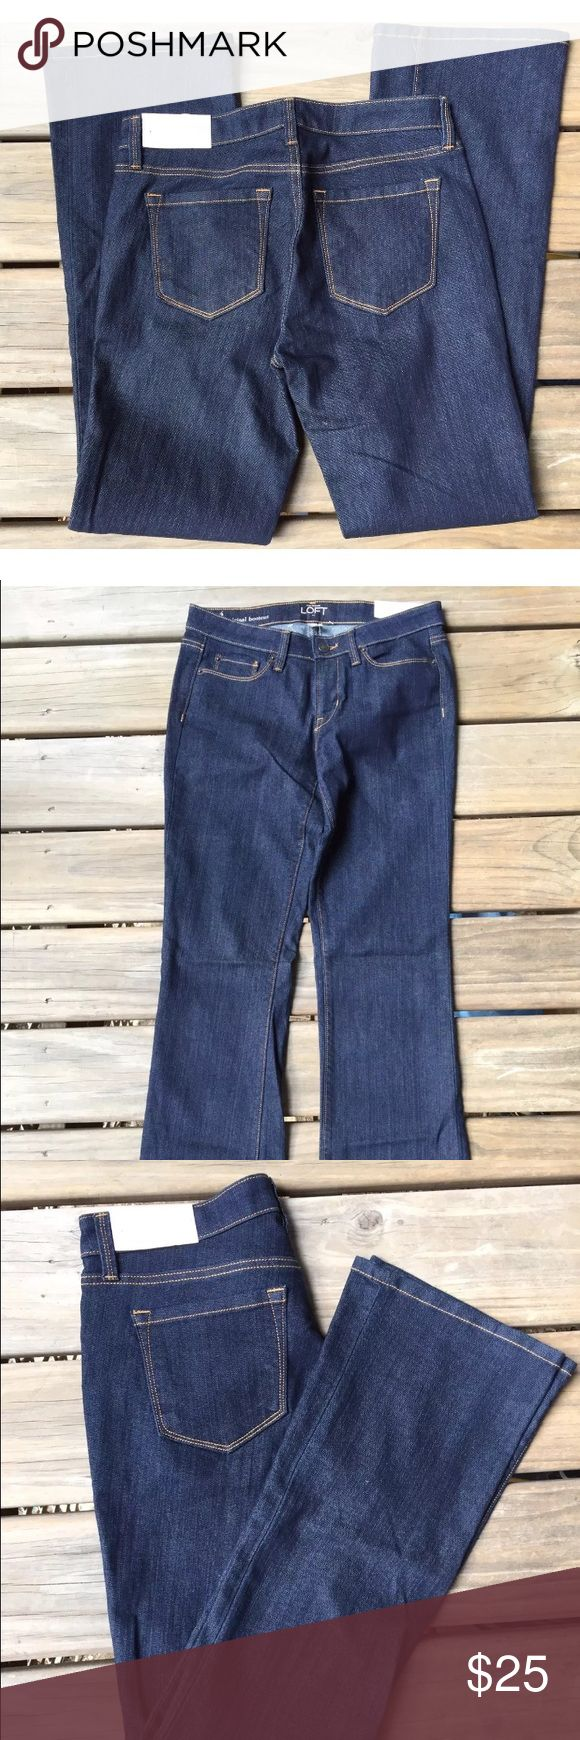 Brand new! Ann Taylor Loft Bootcut Jeans Sz 4 Brand new with tags!!! Women's Dark Wash Jeans From Ann Taylor Loft Bootcut Size 4 LOFT Jeans Boot Cut